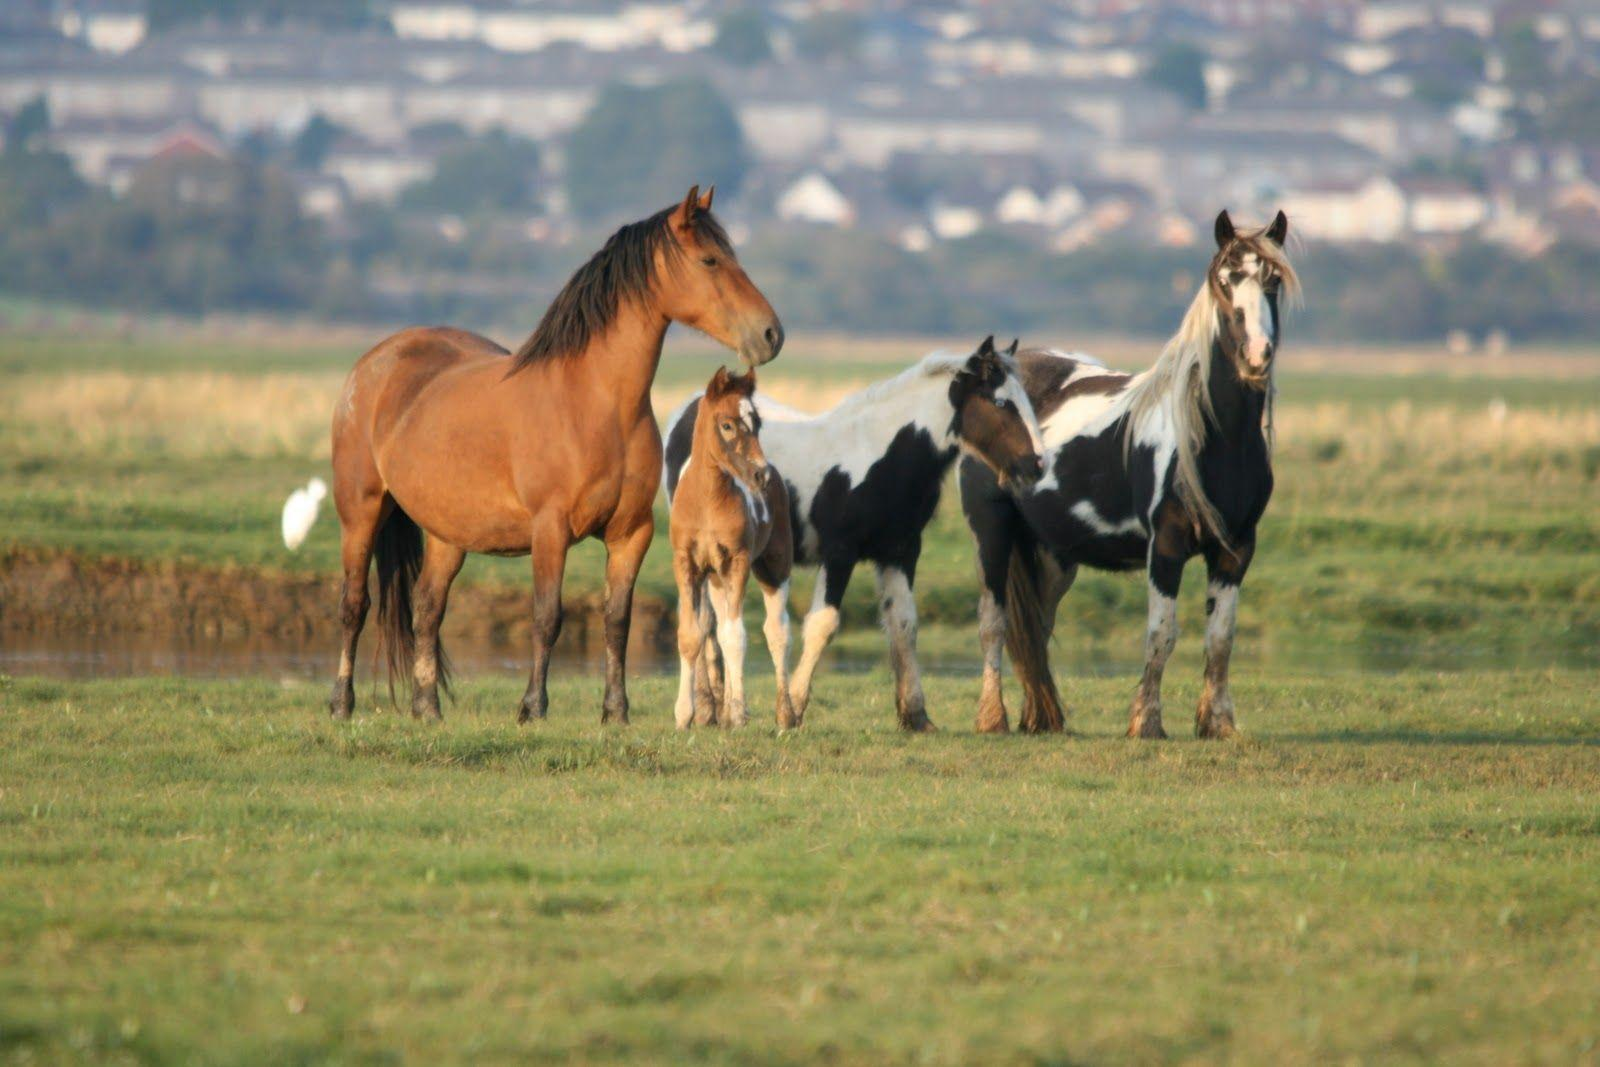 wild horses racing wallpaper - photo #1